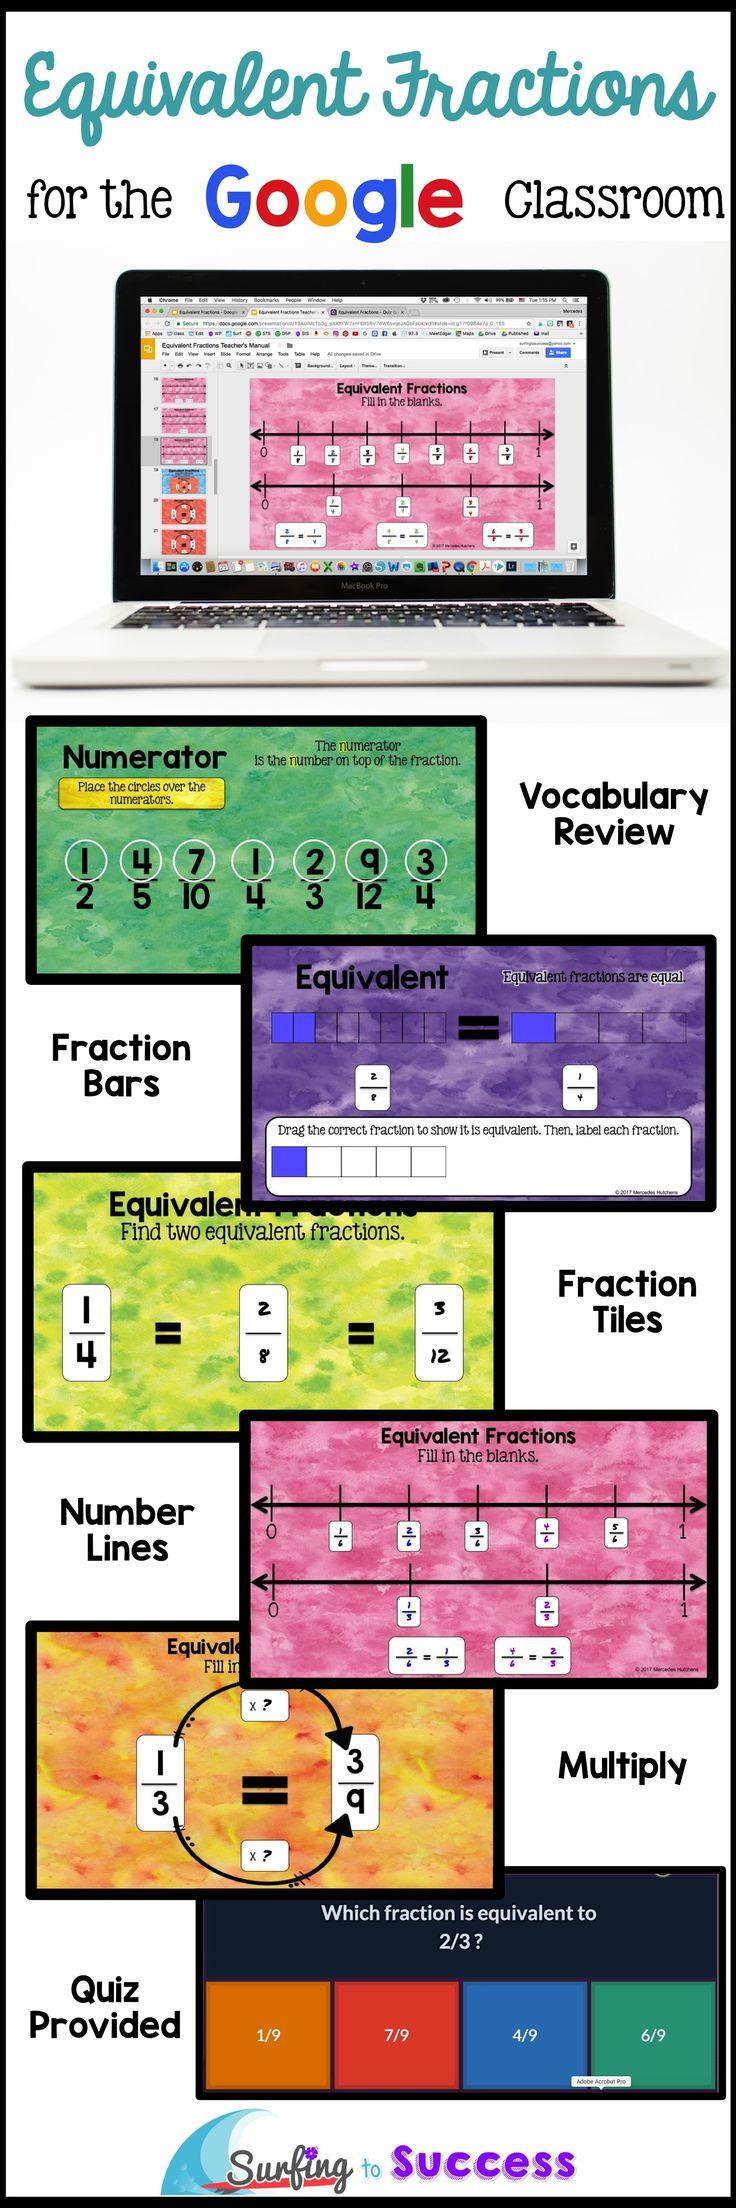 5 strategies for finding equivalent fractions are covered in this digital Google Slides resource. After reviewing fraction vocabulary, students will recognize and generate equivalent fractions using fraction bars, fraction tiles, fraction number lines, and multiplication.